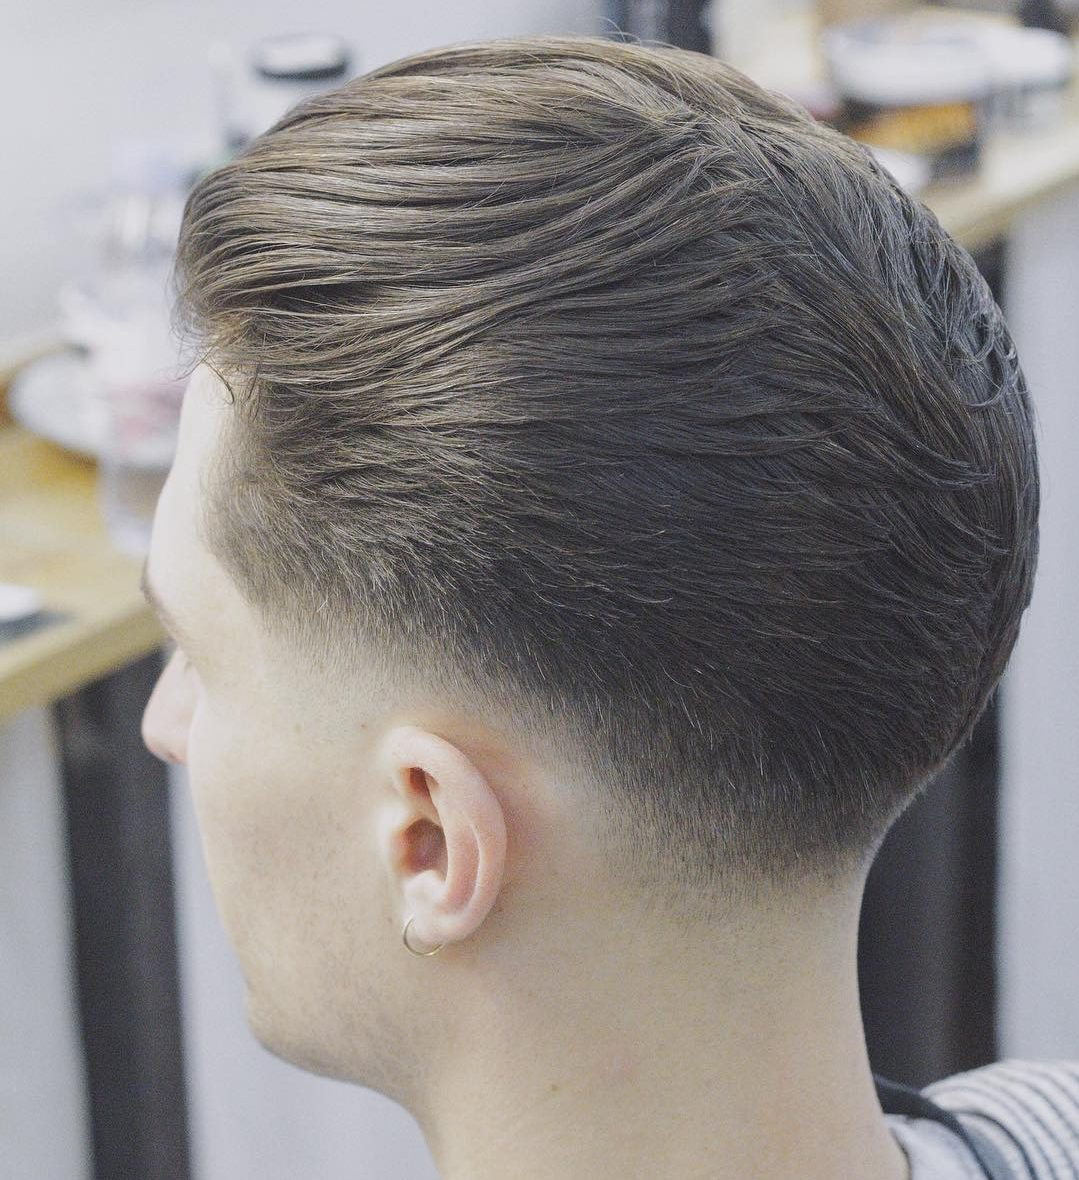 step by step fade haircut guide step by step fade haircut guide haircutting co 2971